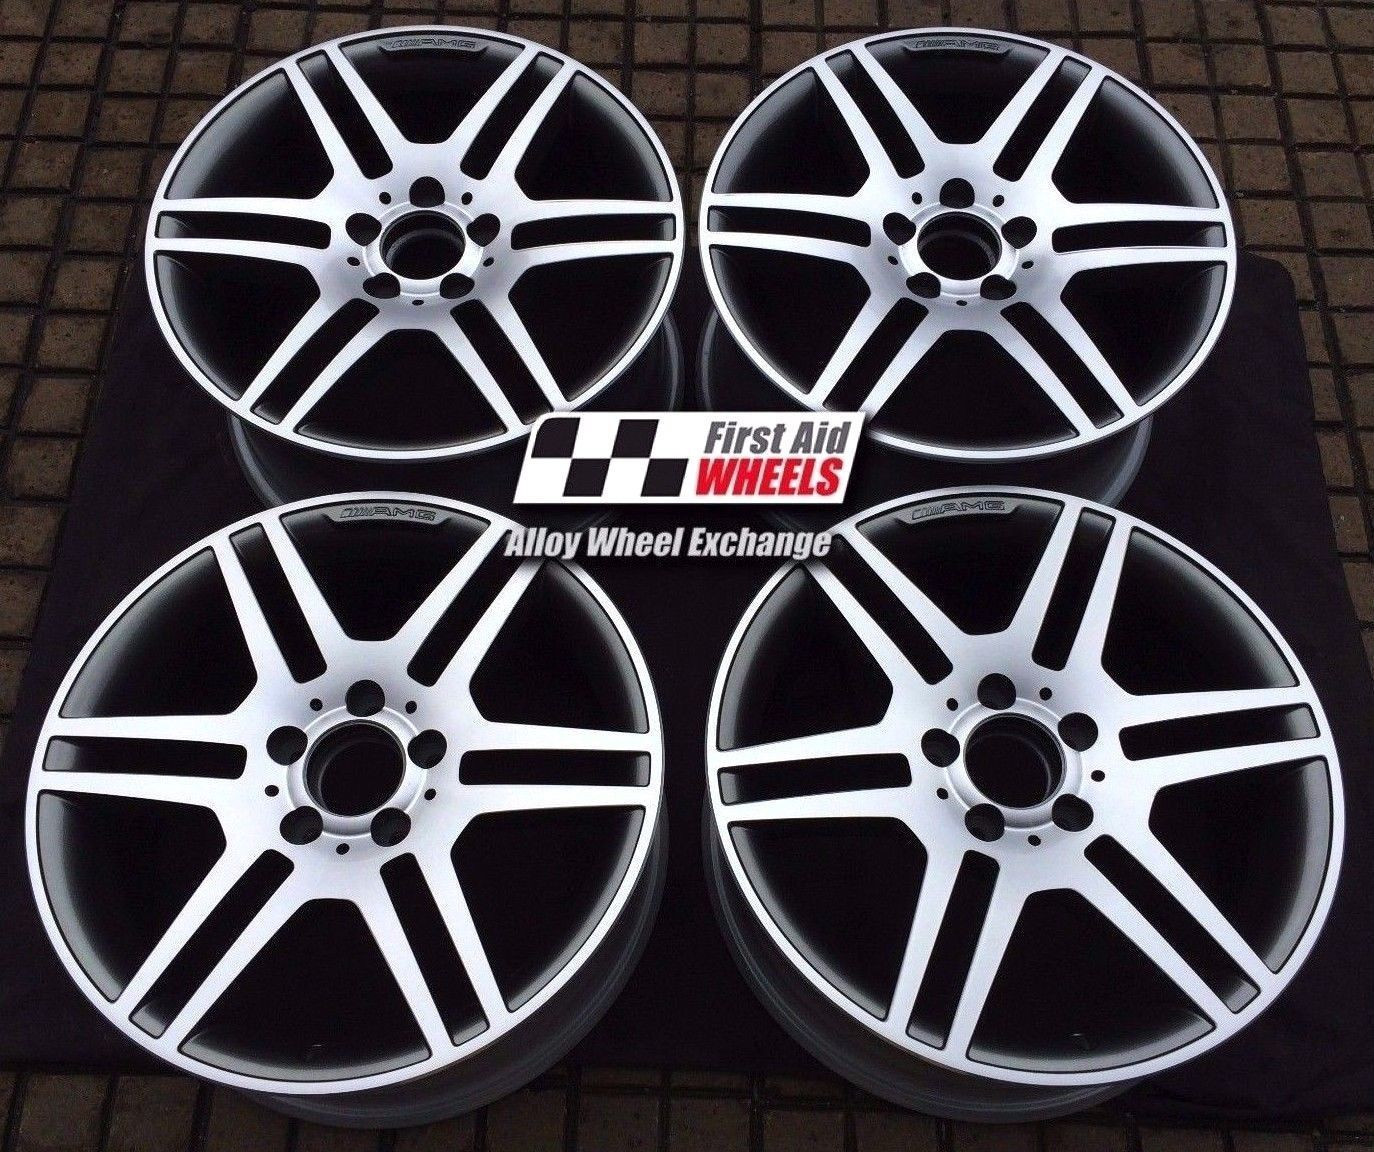 "R353 Diamond Cut Grey MERCEDES E CLASS CONVERTIBLE/COUPE 18"" - AMG IV Genuine Alloy Wheels Set of 4 - EXCHANGE"